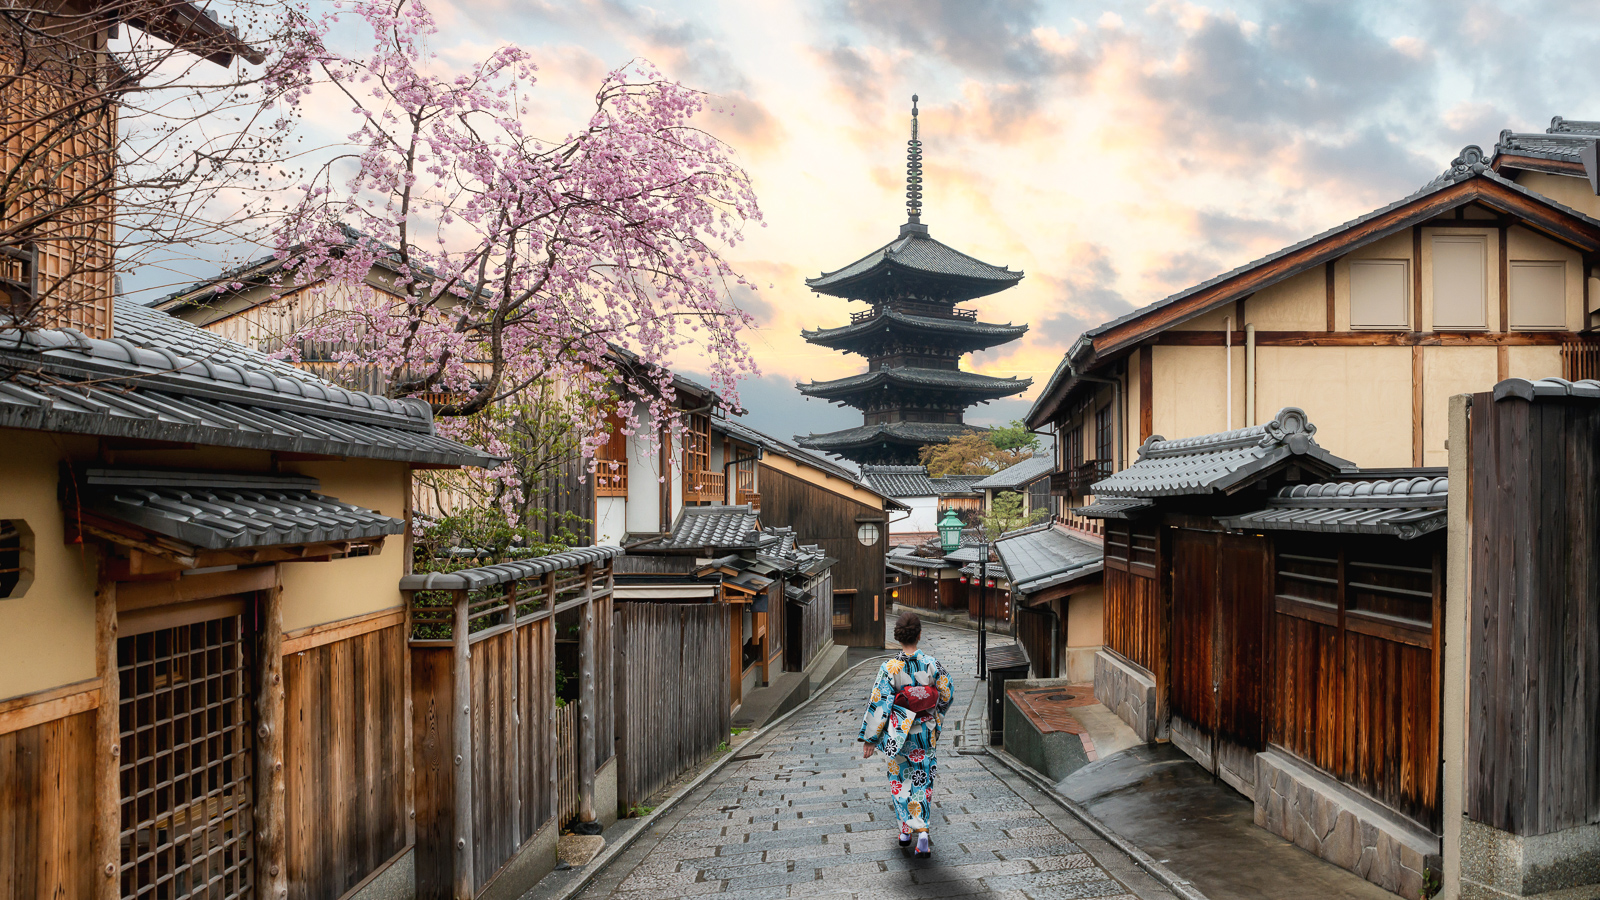 21 Things To Do in Japan: An Insider's Guide